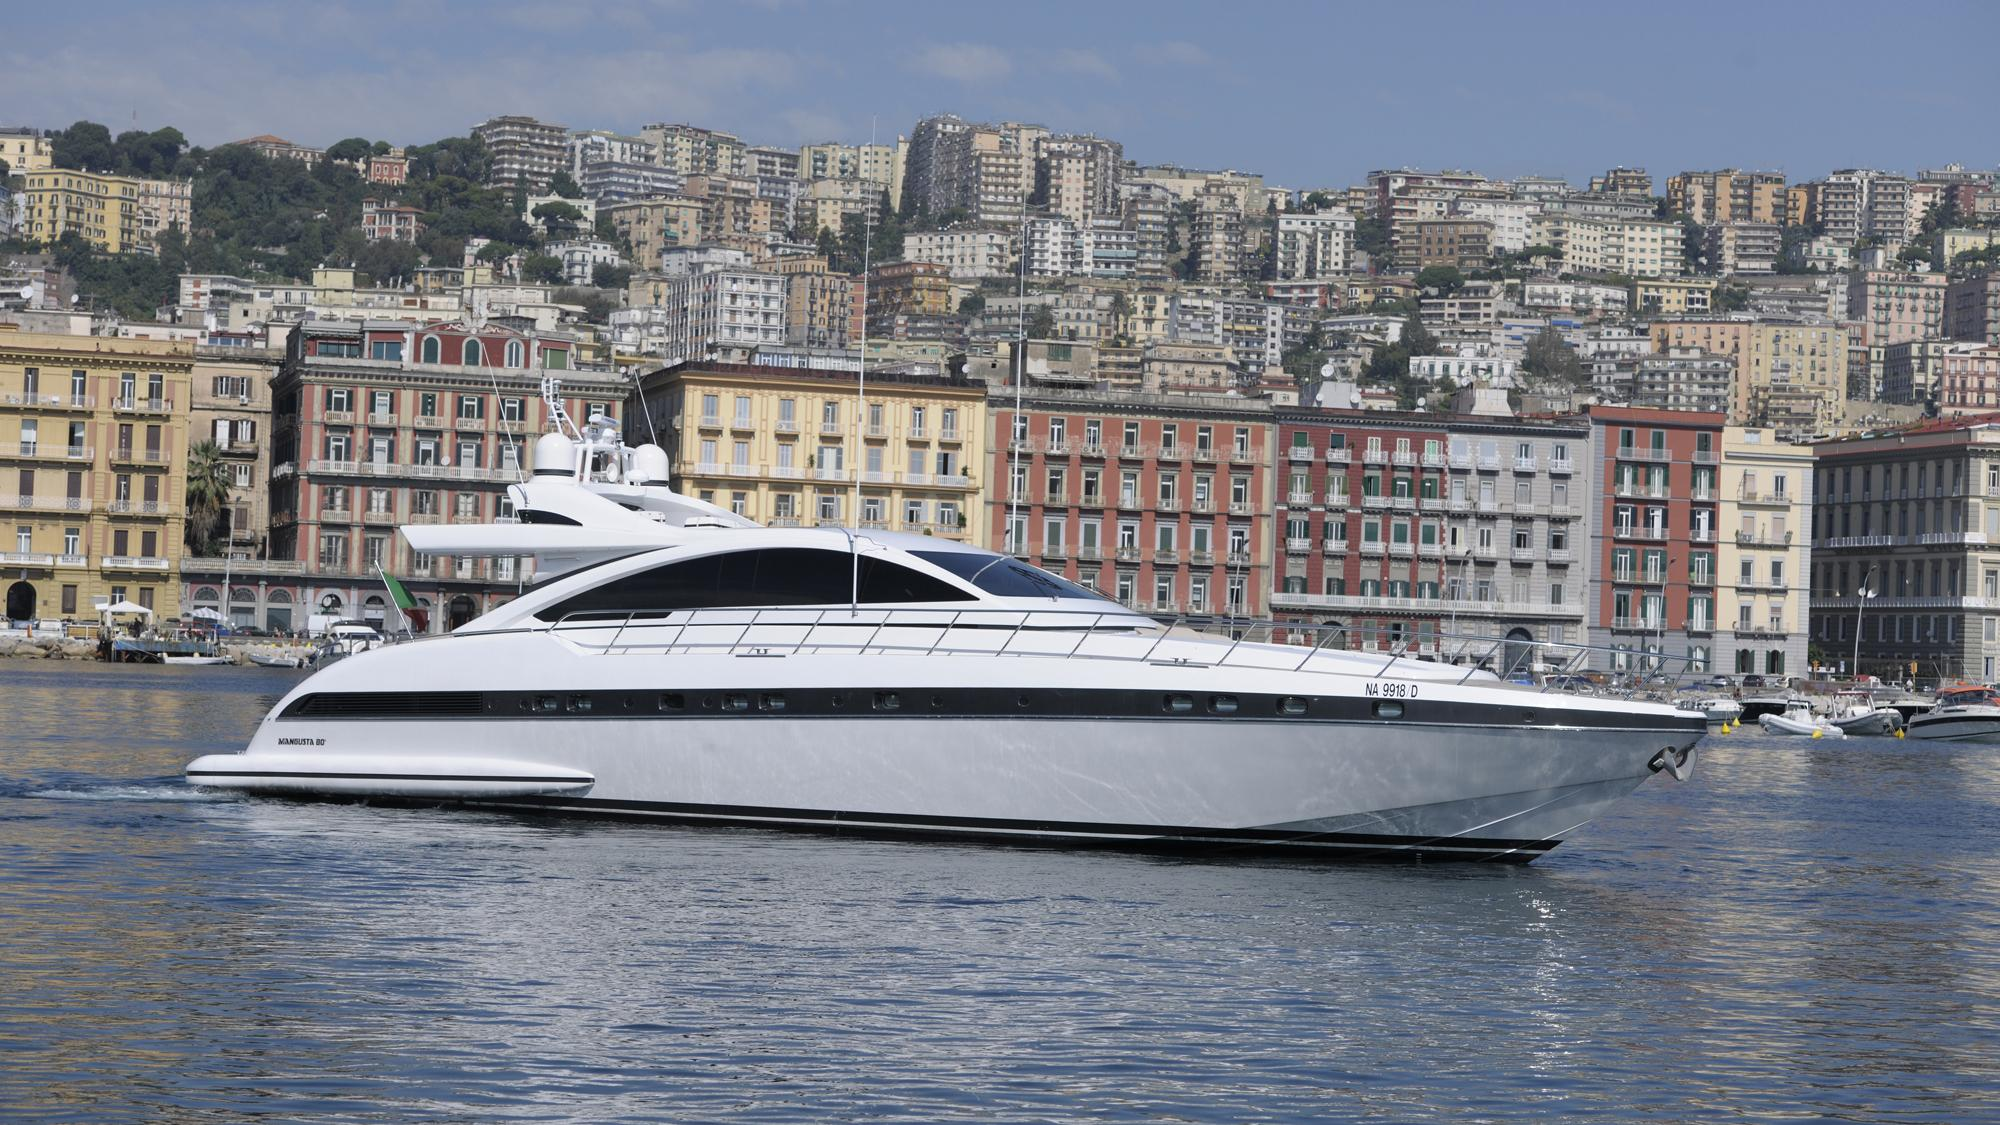 Milu II, Overmarine motor yacht for sale at sea